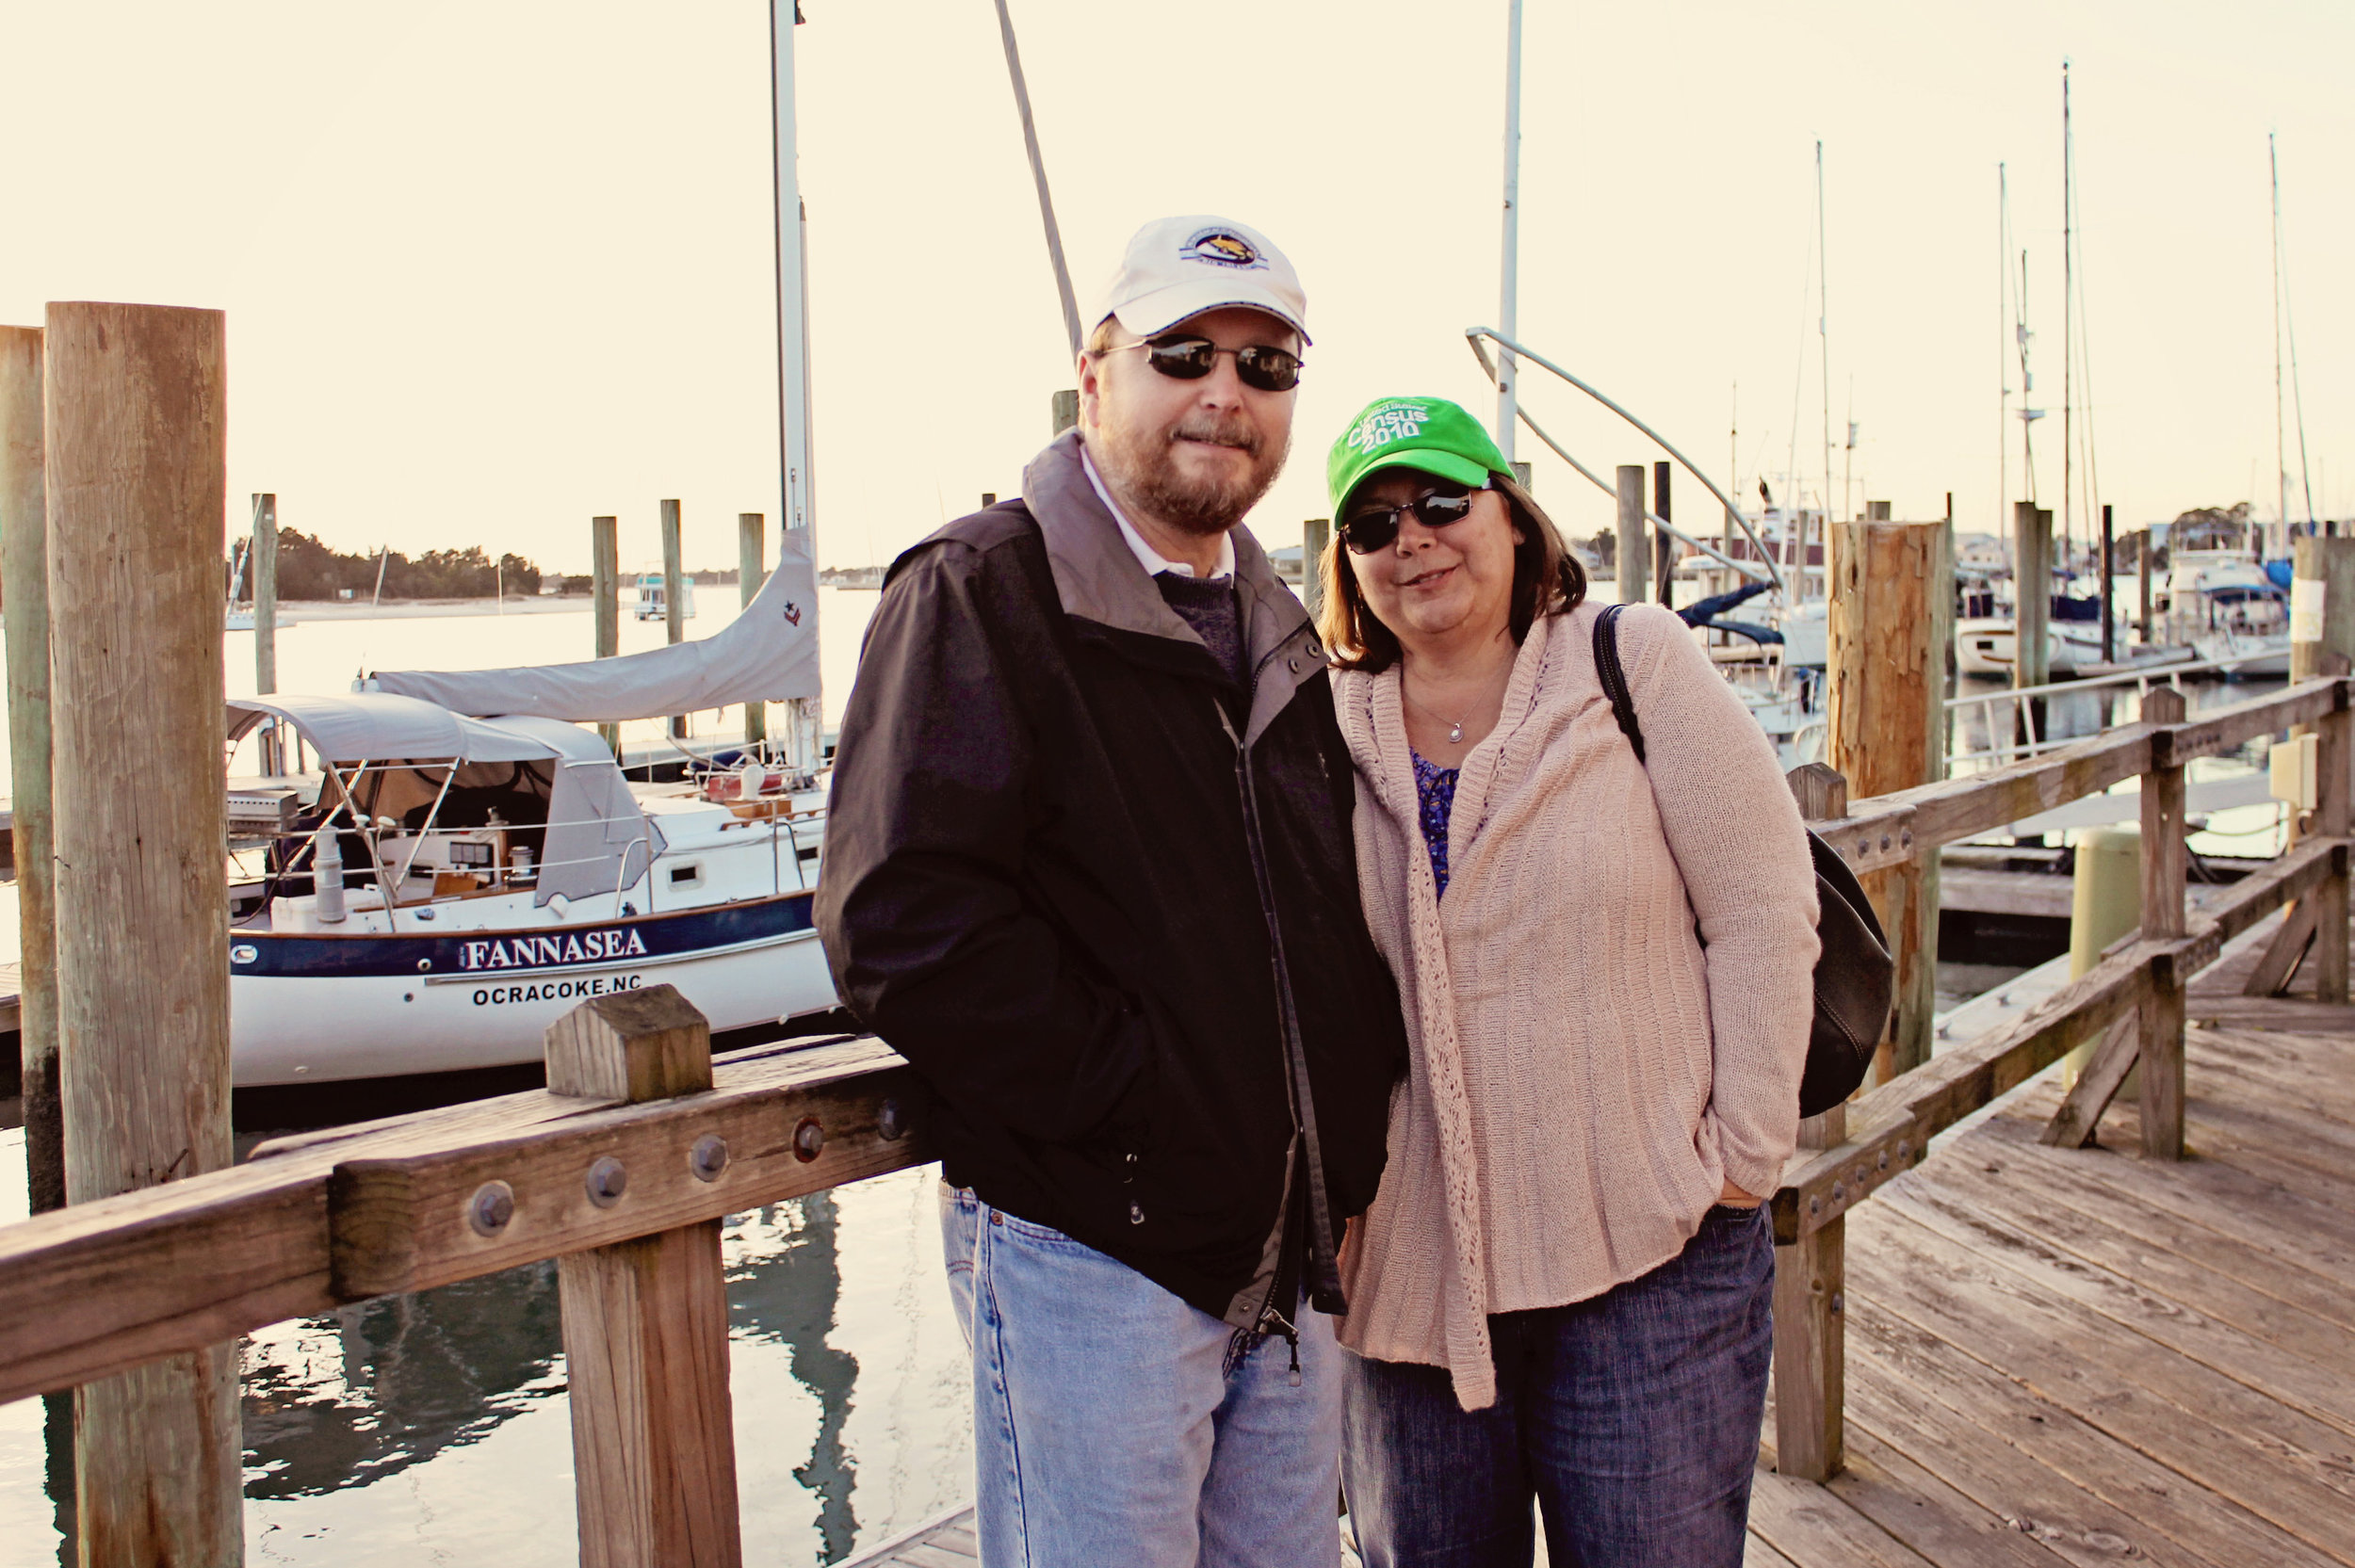 My parents - aren't they cute?